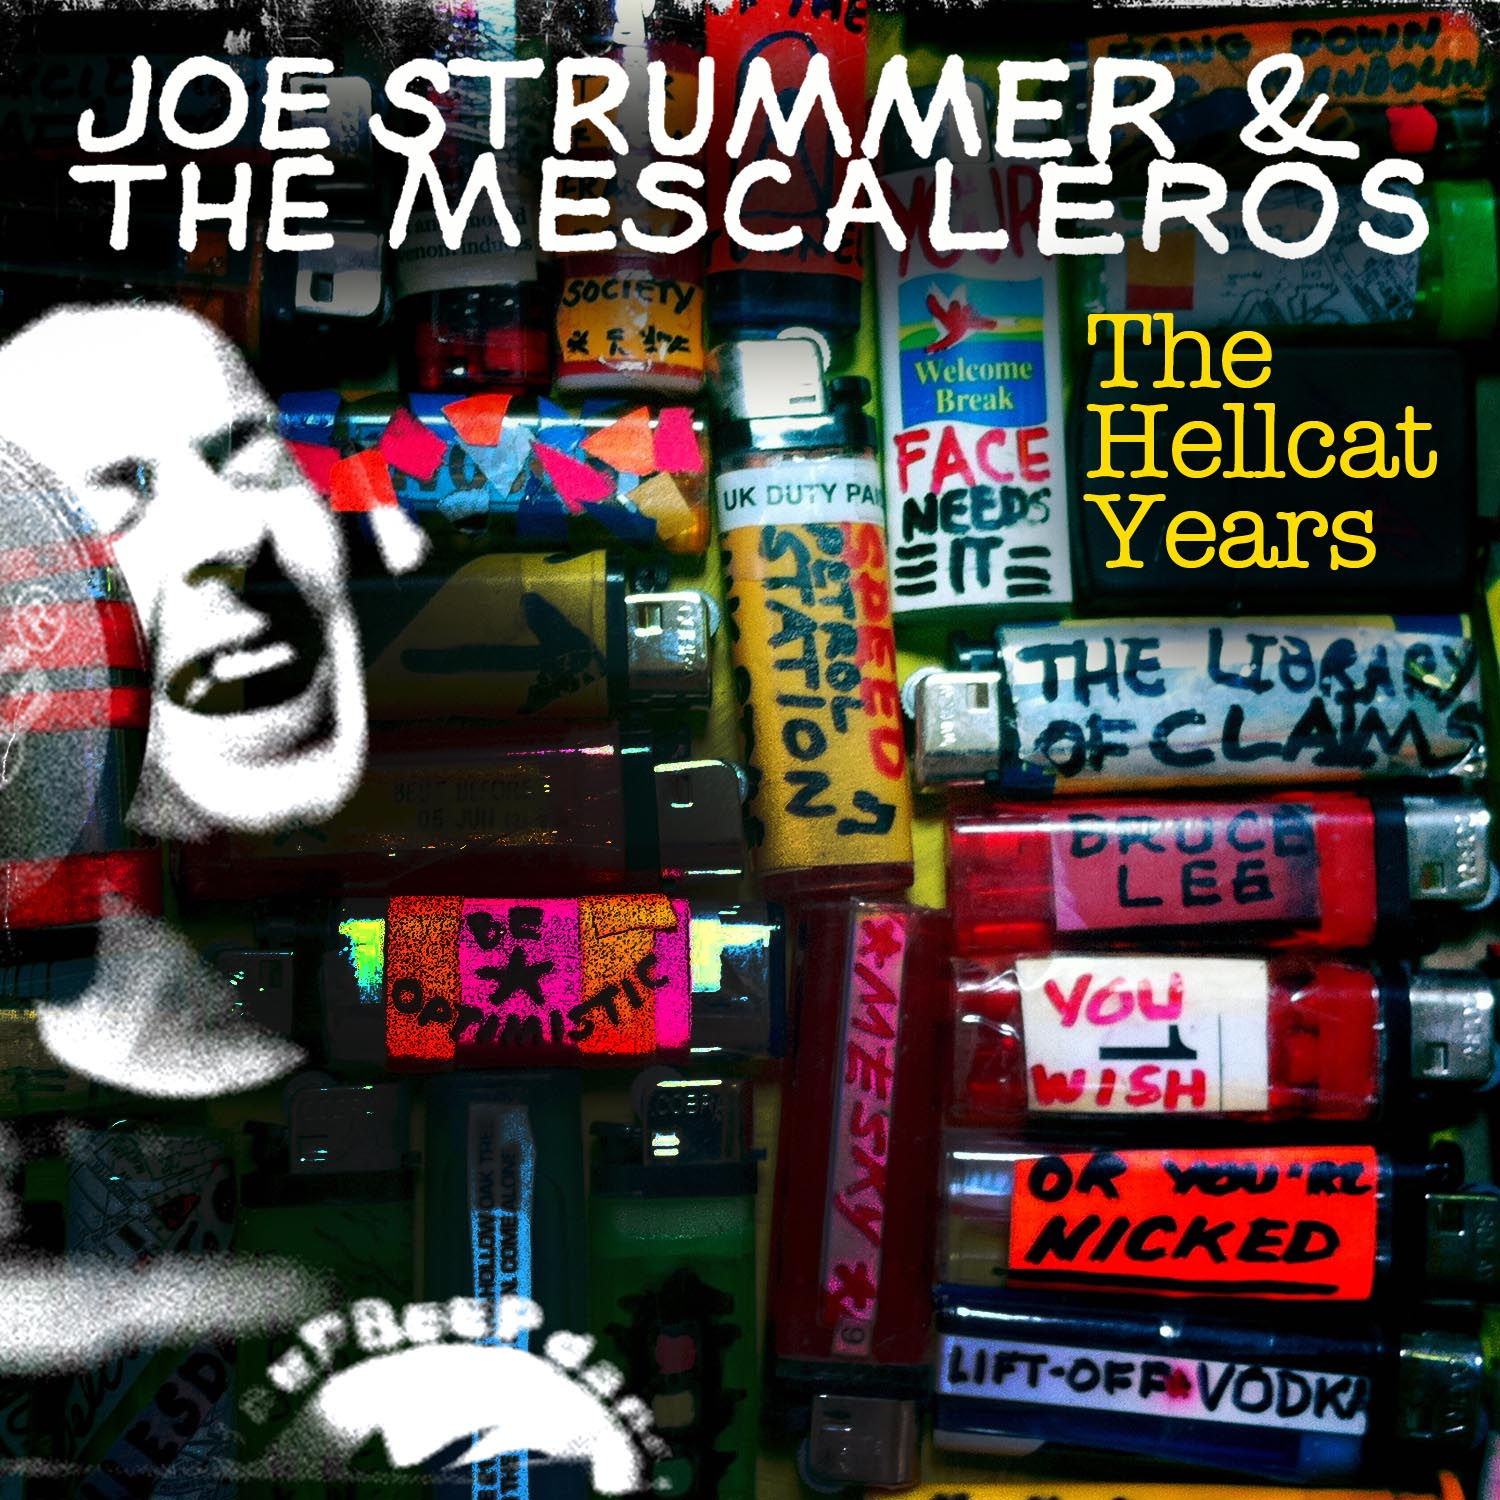 Joe Strummer and The Mescaleros Release Re-Issues and Rarities